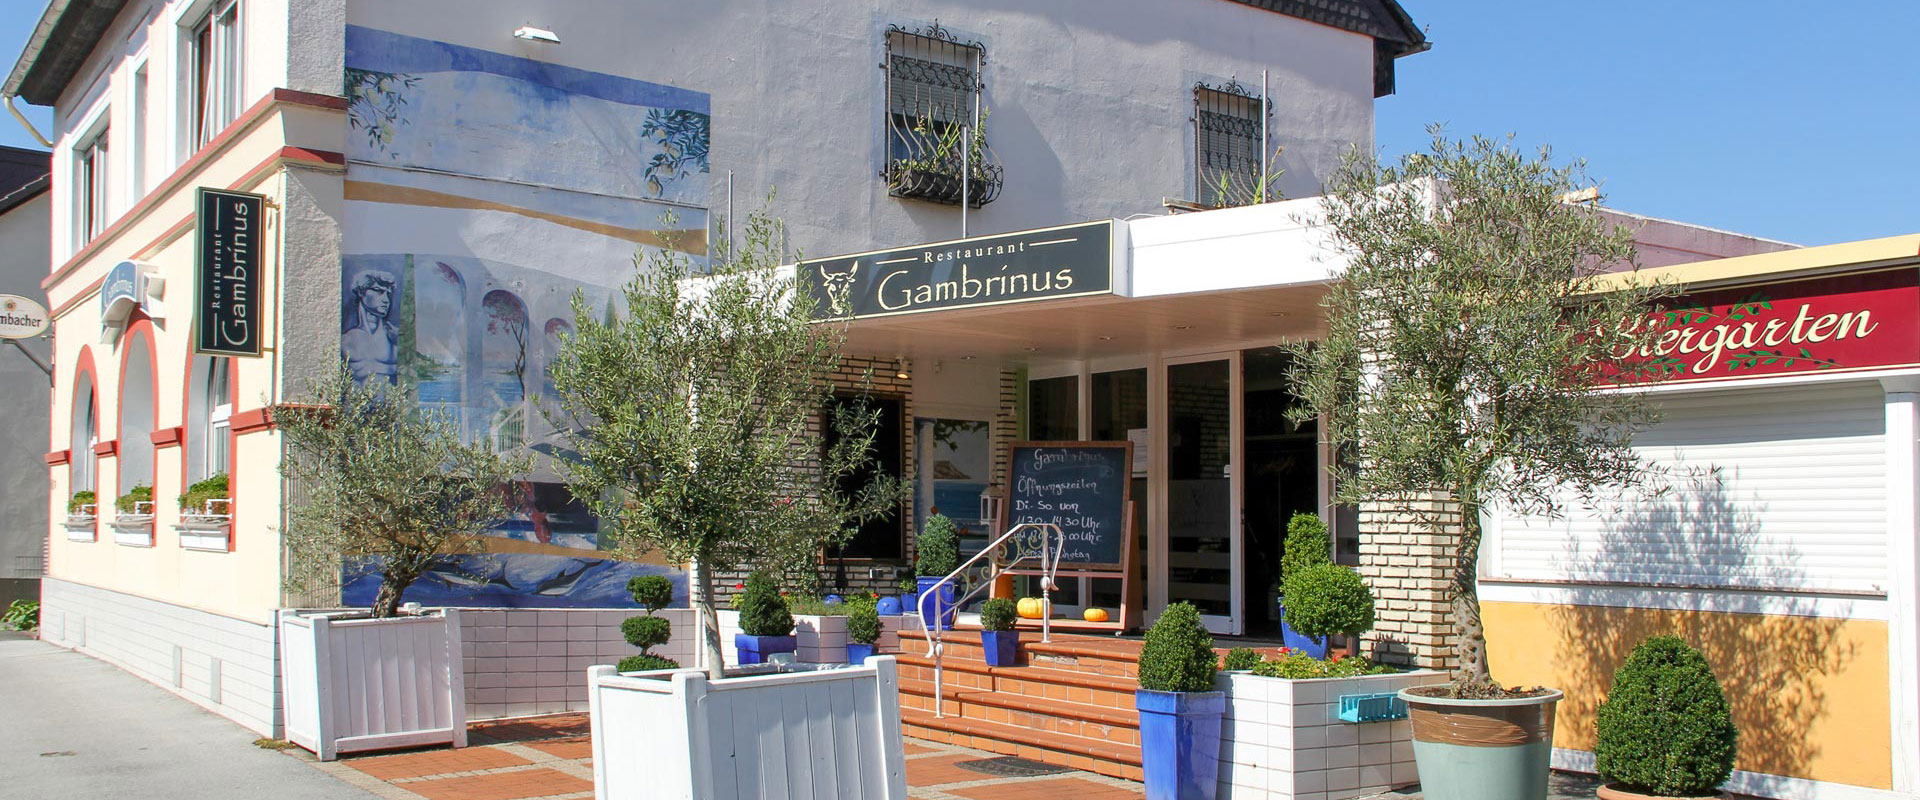 Restaurant Gambrinus -